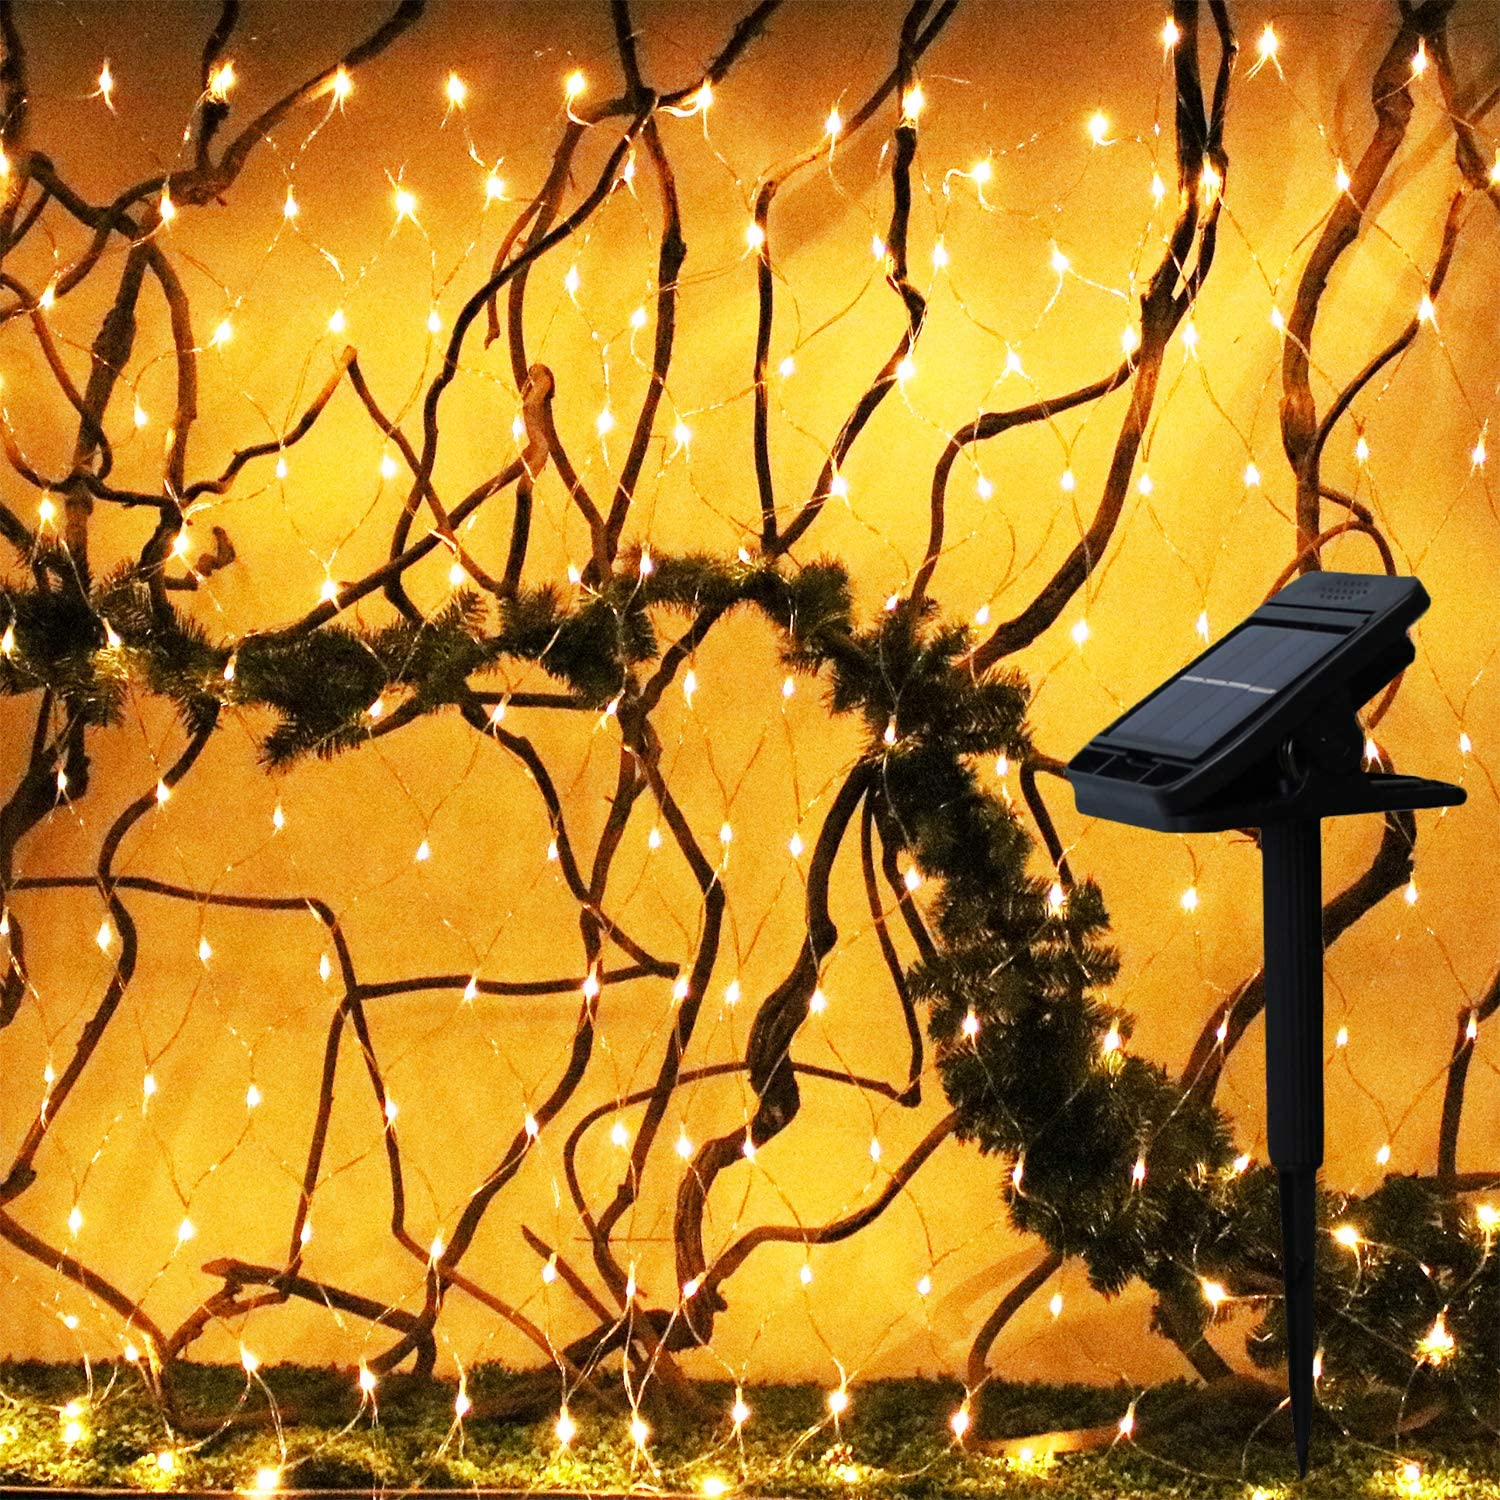 YAOZHOU Mesh Net Christmas Lights Solar Powered 8 Modes Warm White 9.8FtX6.6Ft 204LED Window Fairy Decor Lights for Christmas,Holiday,Party,Outdoor,Wedding,Garden(Warm White)